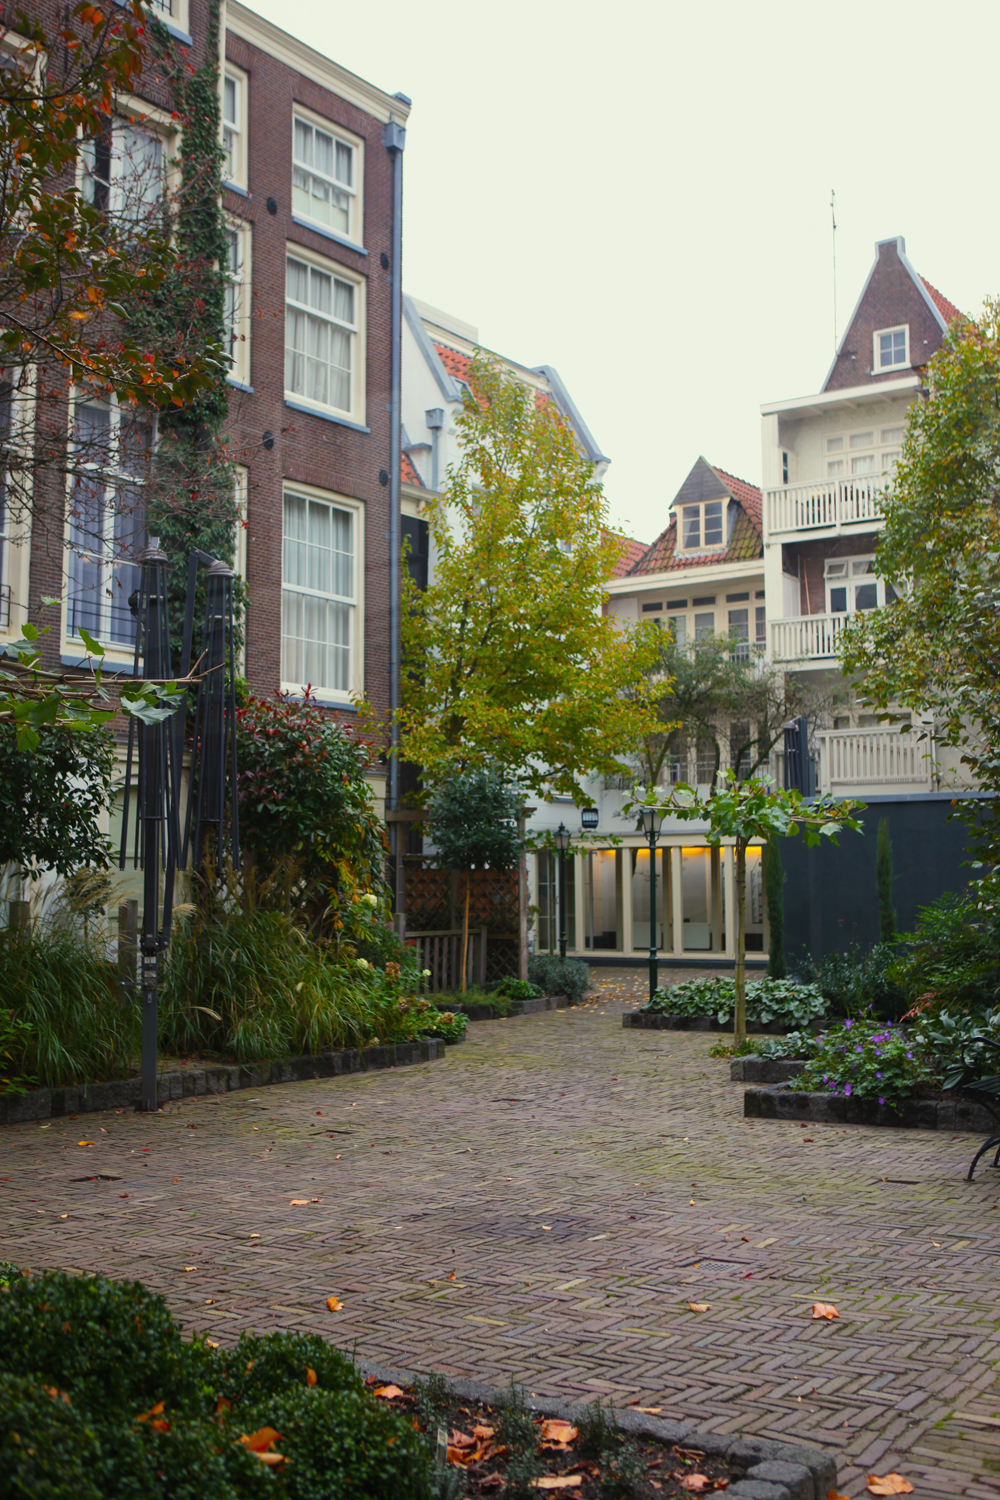 A view into the hotel's courtyard.